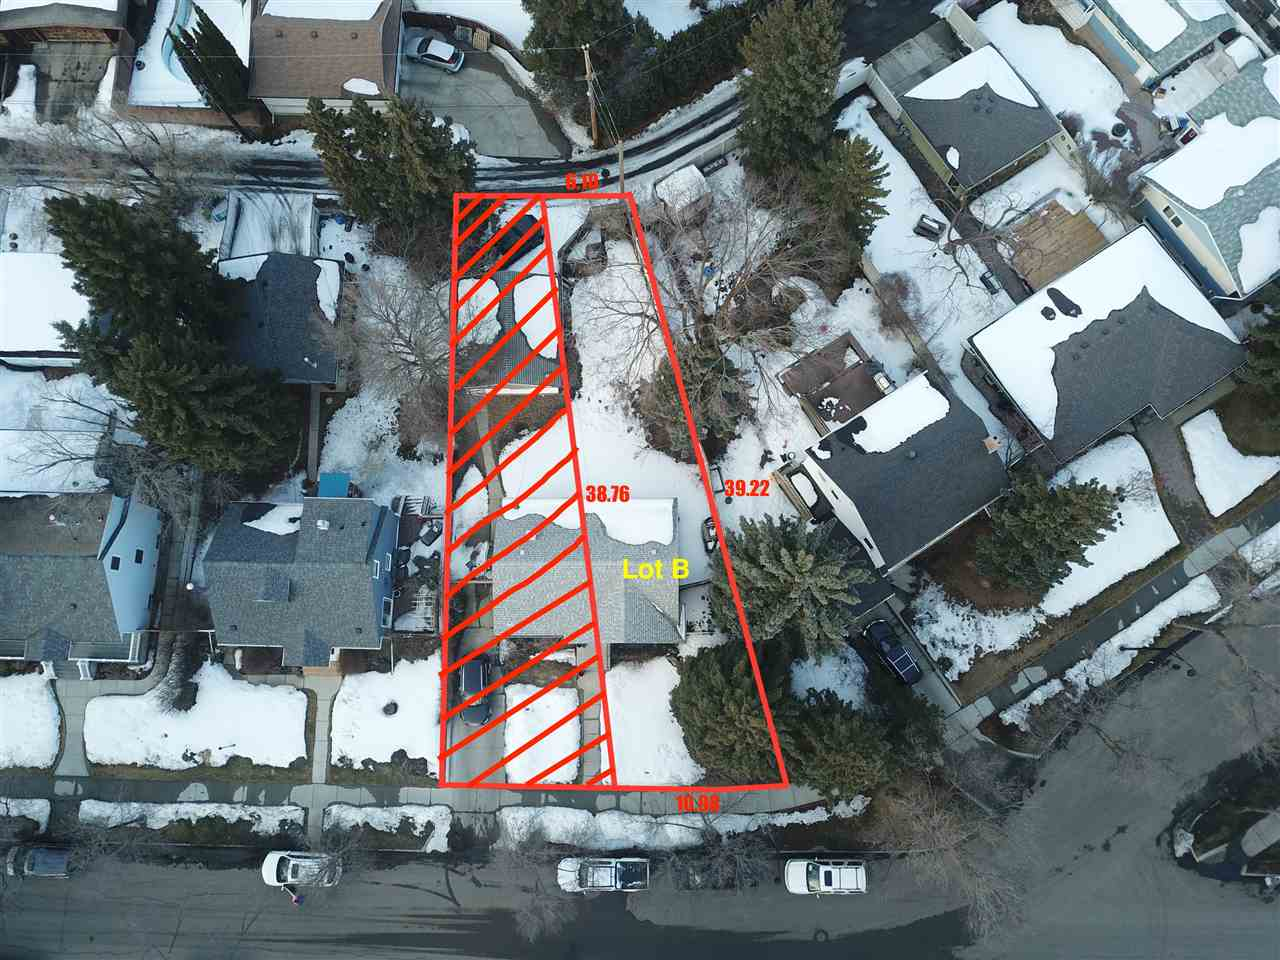 Here is a wonderful opportunity for you to build your dream home in Crestwood, one of the most sought after communities in Edmonton. This soon to be vacant lot sits on a beautiful, quiet, treed lined street just a one block from the Mackenzie Ravine. This property is also just steps from Crestwood public school, St. Paul Catholic school, loads of playgrounds, a community centre, an outdoor hockey rink and a curling club. This lot has a 36' wide frontage and 127' deep. Plenty of space to build a large 2 or 3 story home. The original home still stands however the house will be demolished and the site cleared before possession. The seller is able and willing to build a new home on the property and has awesome house designs/plans available if required.